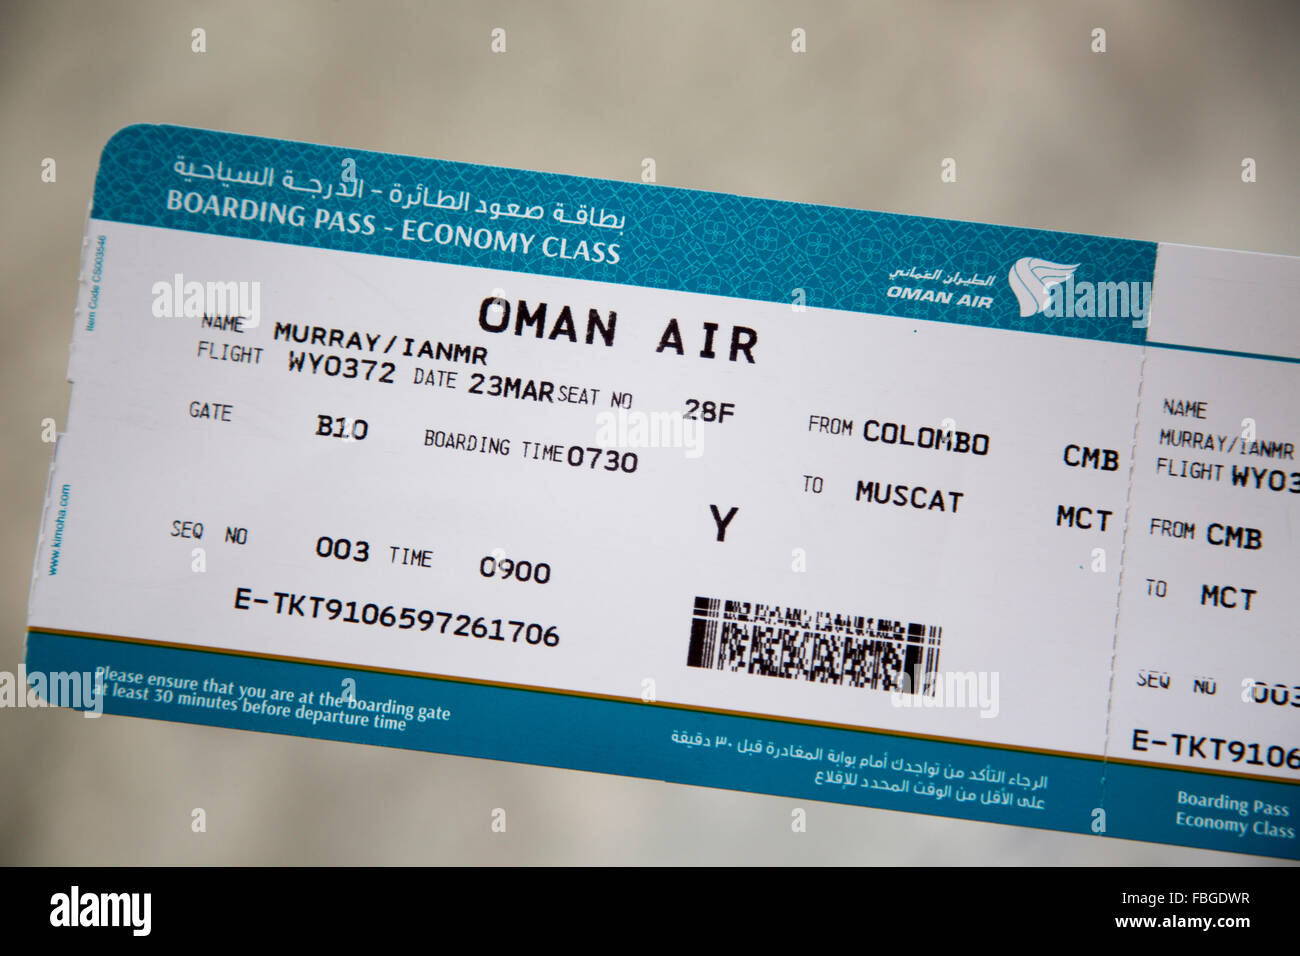 Close Up Of Oman Air Economy Boarding Pass Airplane Ticket